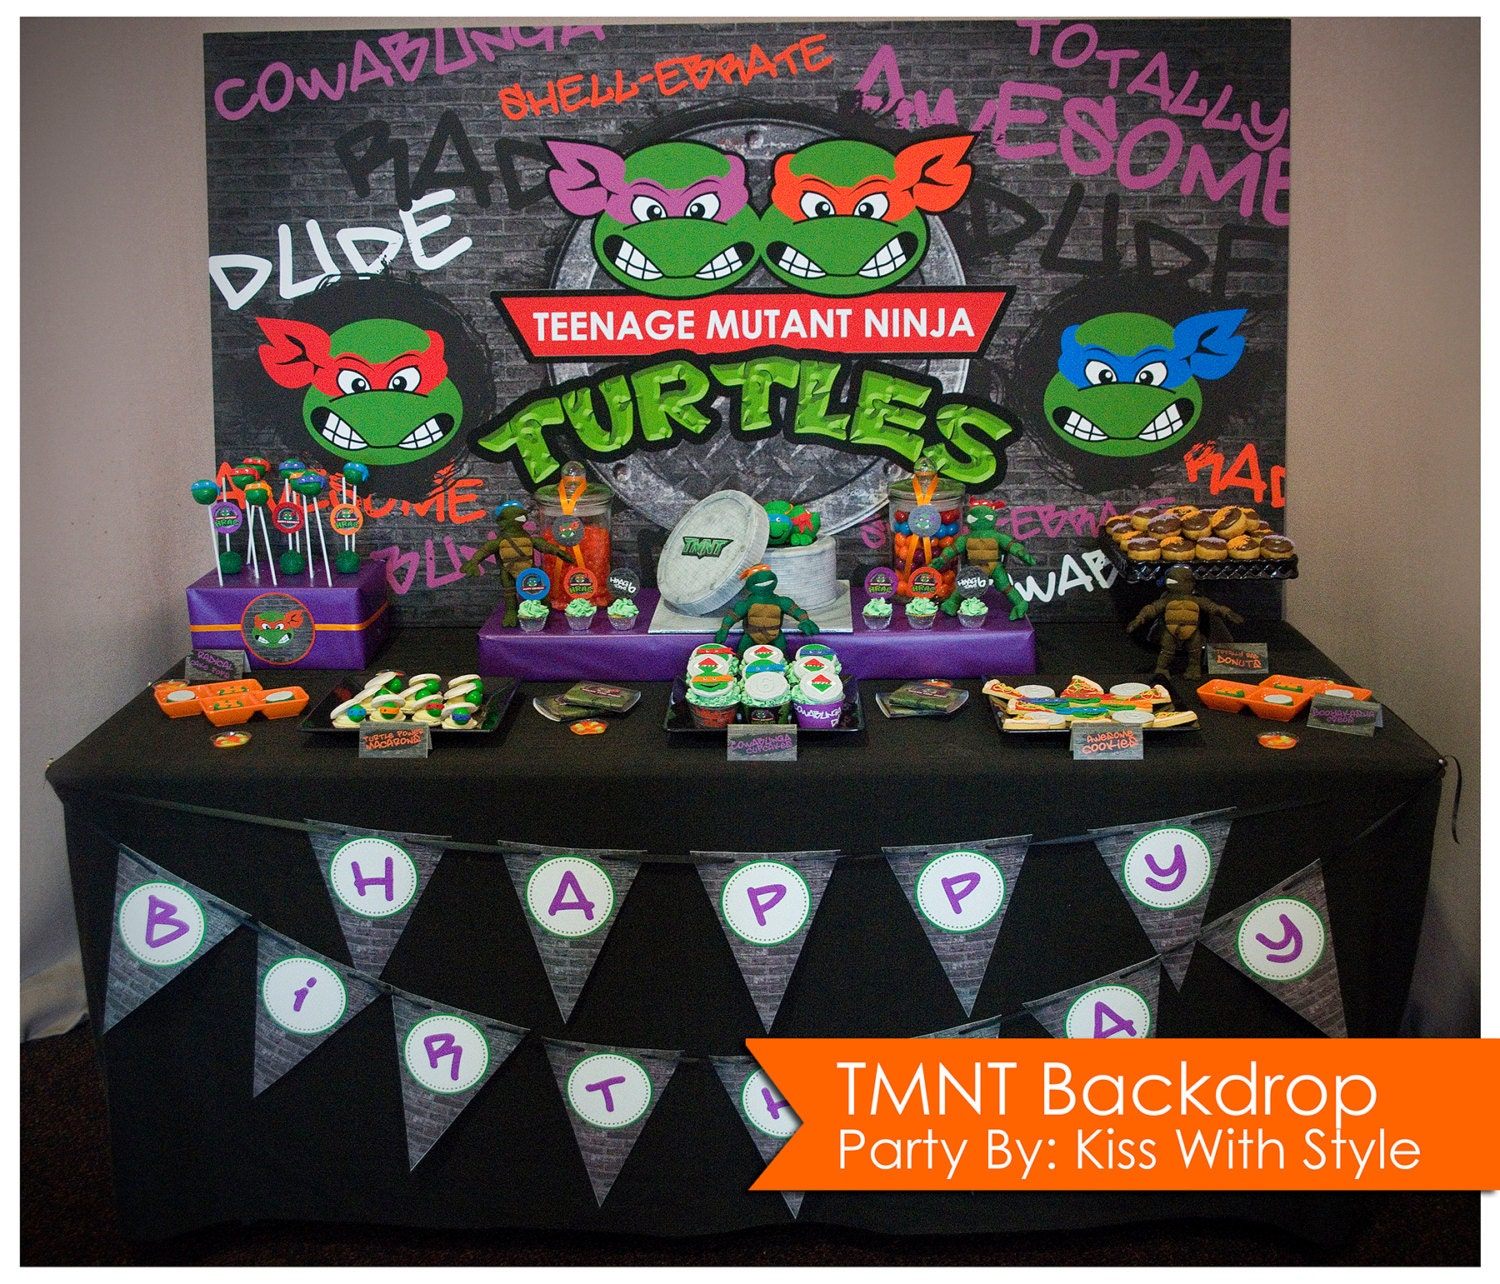 Teenage Mutant Ninja Turtle TMNT Backdrop Size 6ft x 3ft